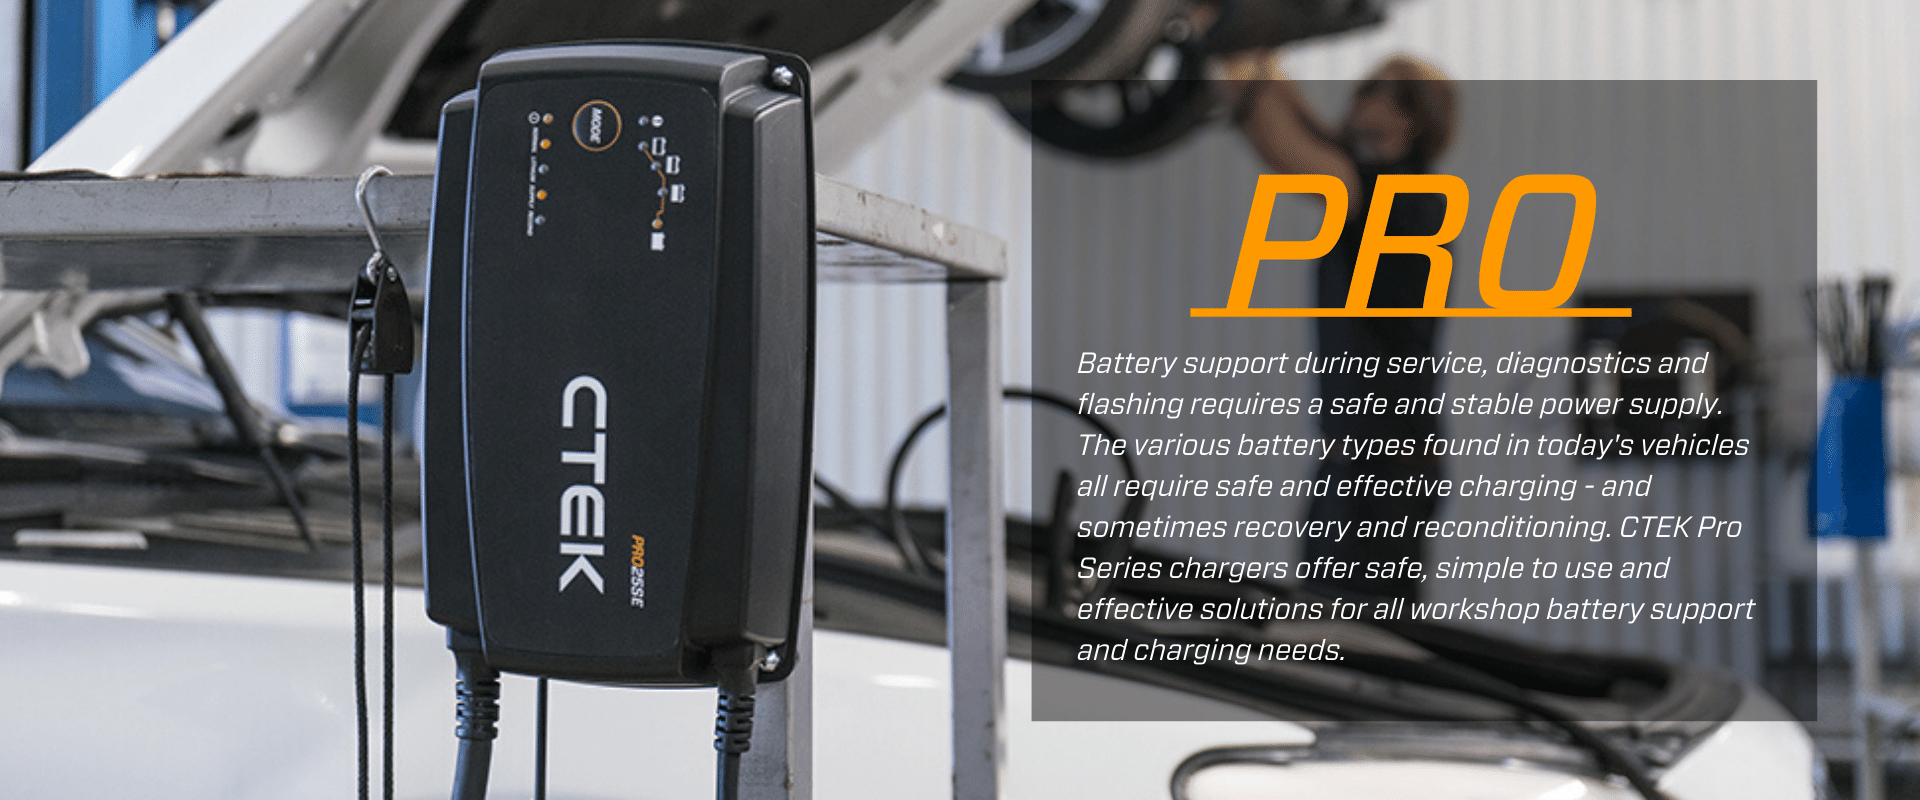 CTEK Pro Series Battery Chargers for Power Management